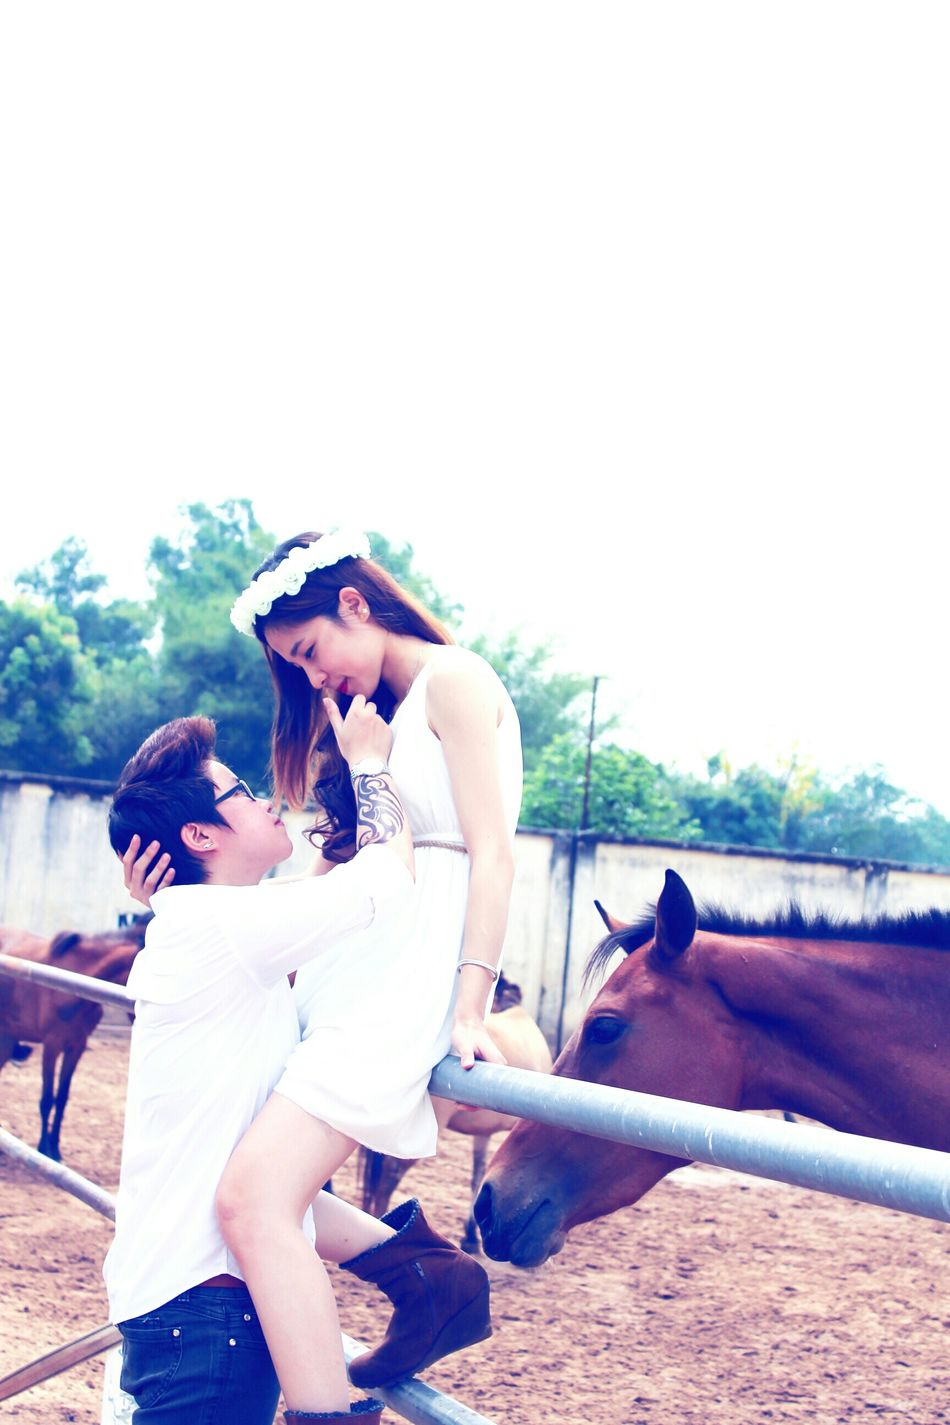 Couple Happy Together Vietnam Beautiful Anniversary Ioveyou Love Country Ballad